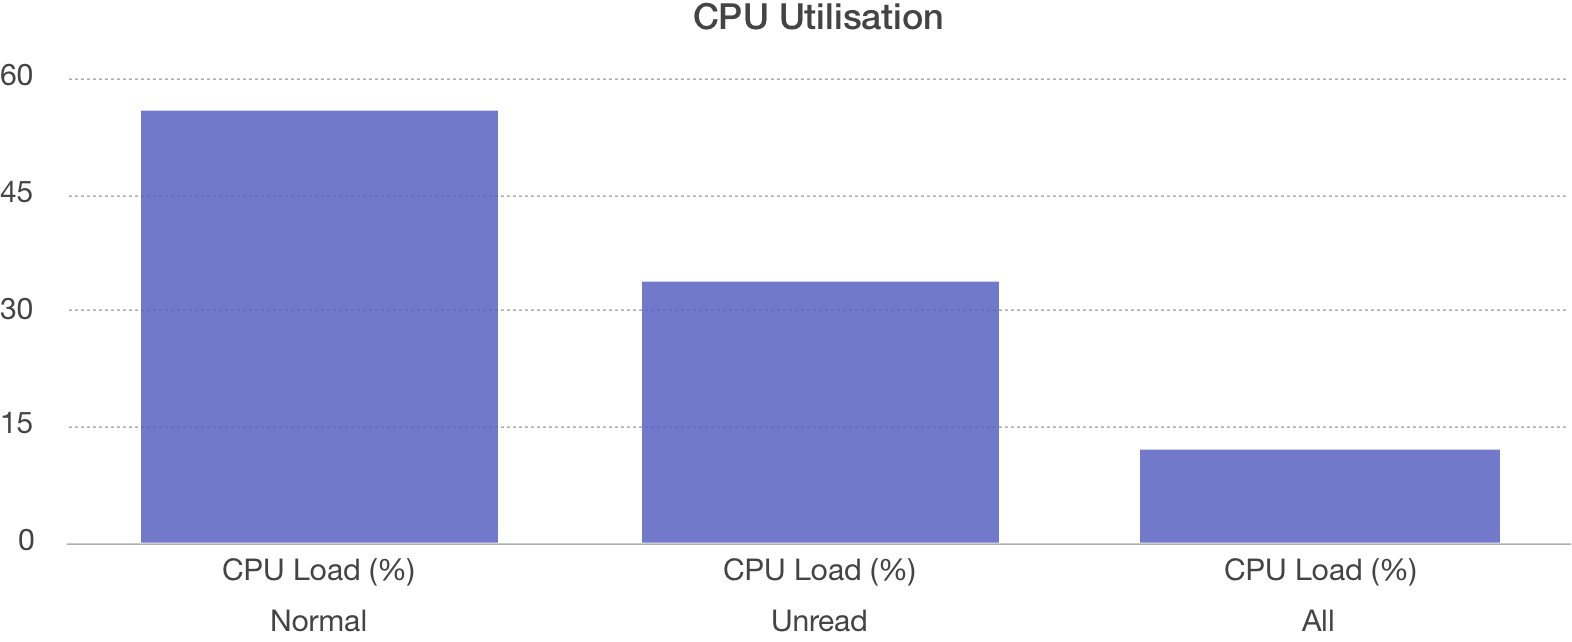 CPU consumption across Normal, Stripped Unread and All Stripped datasets.